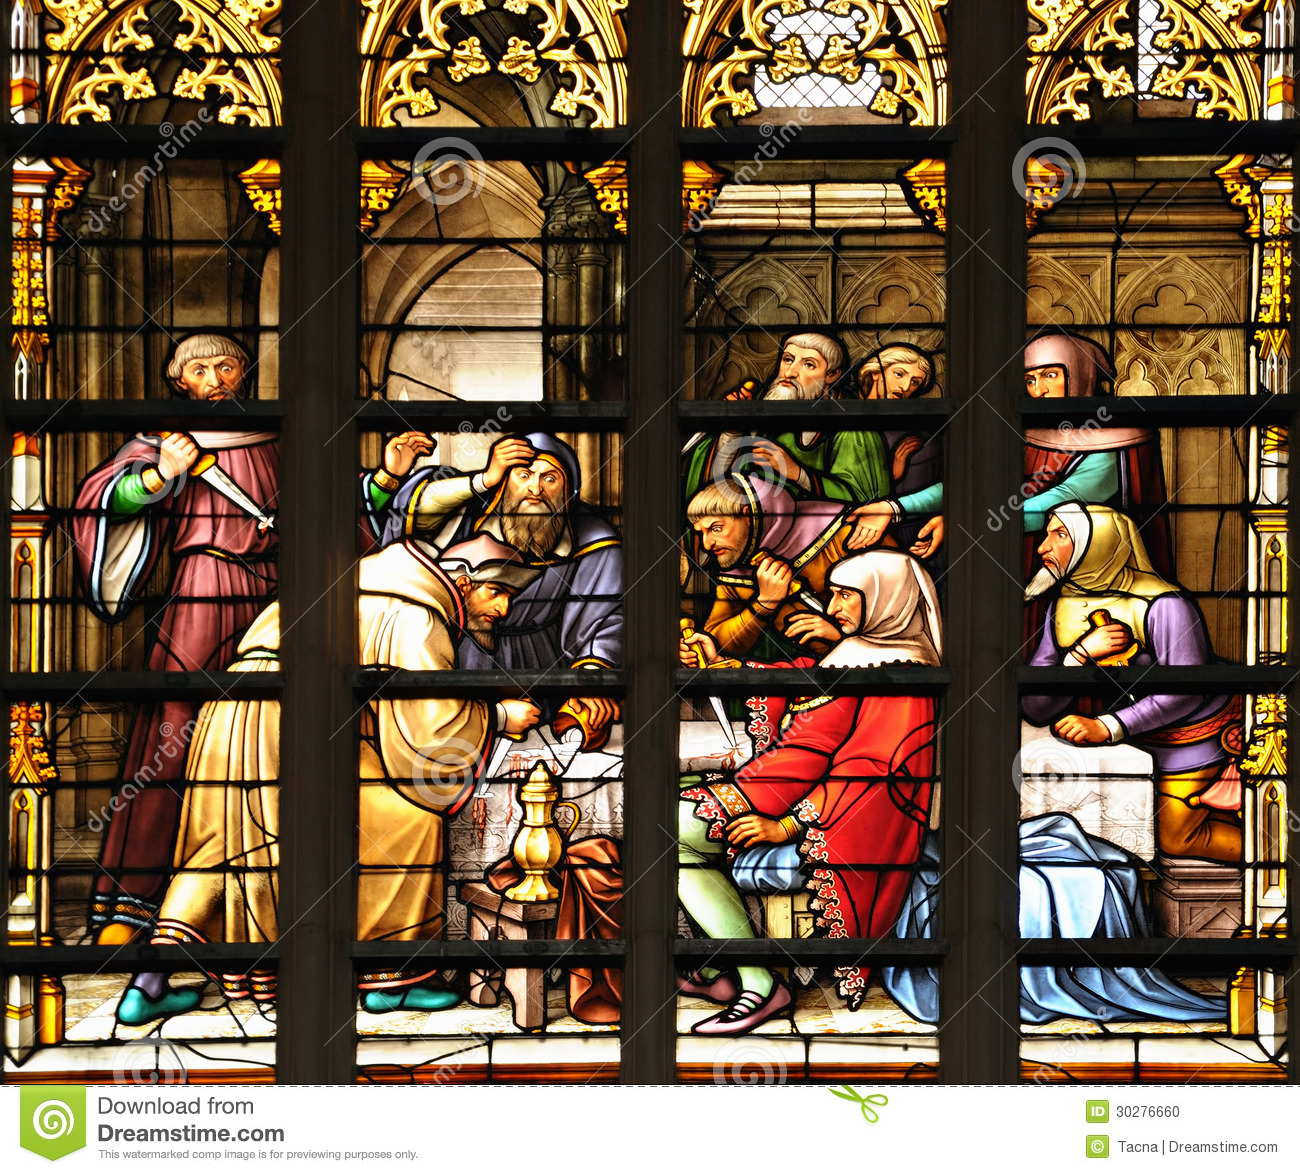 https://thumbs.dreamstime.com/z/stained-glass-window-scene-medieval-plot-january-brussels-scene-decorates-interior-cathedral-st-michael-30276660.jpg